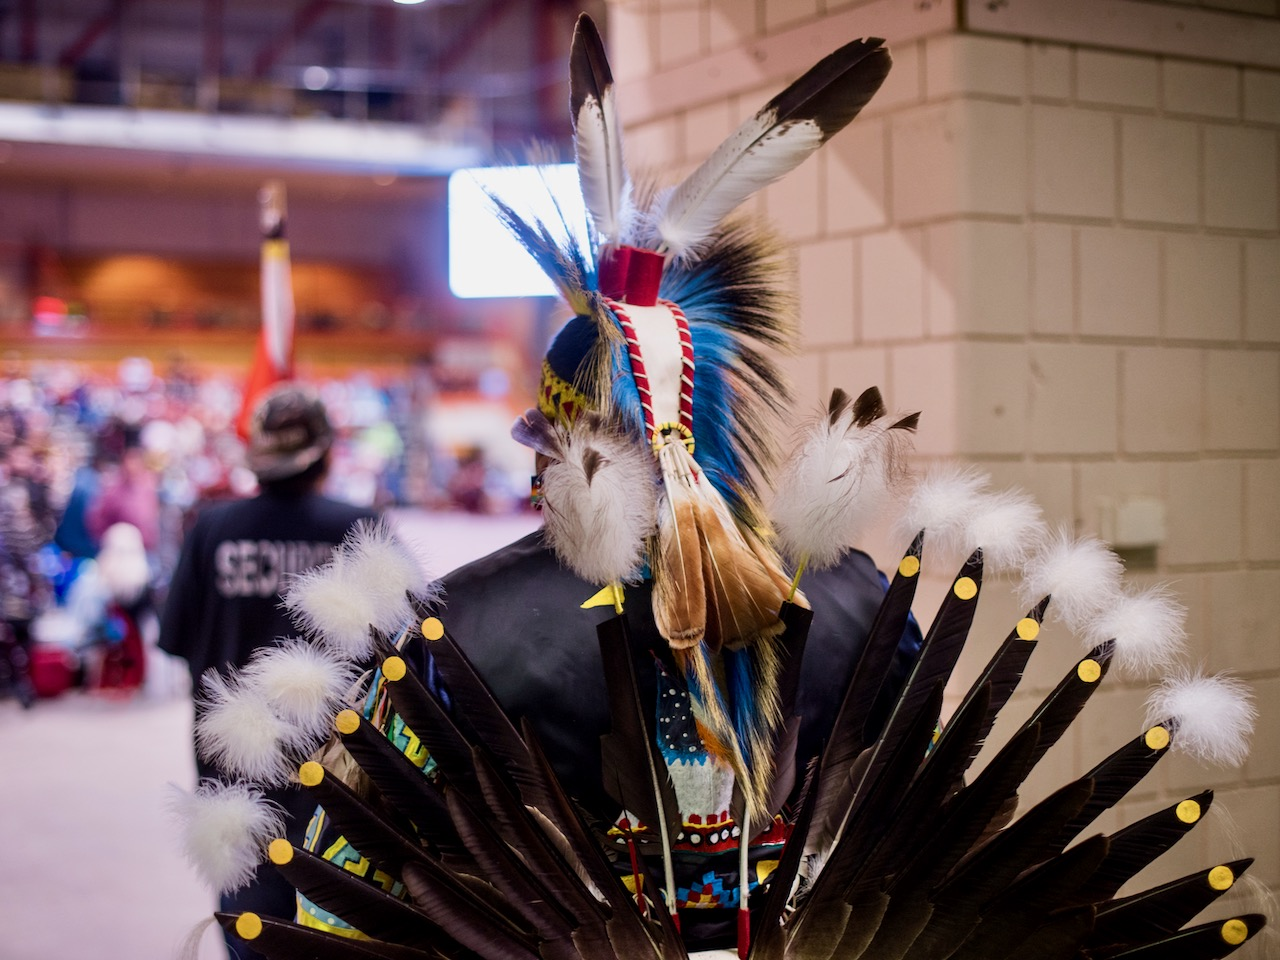 'We must reconcile': How Native American Day came about in South Dakota